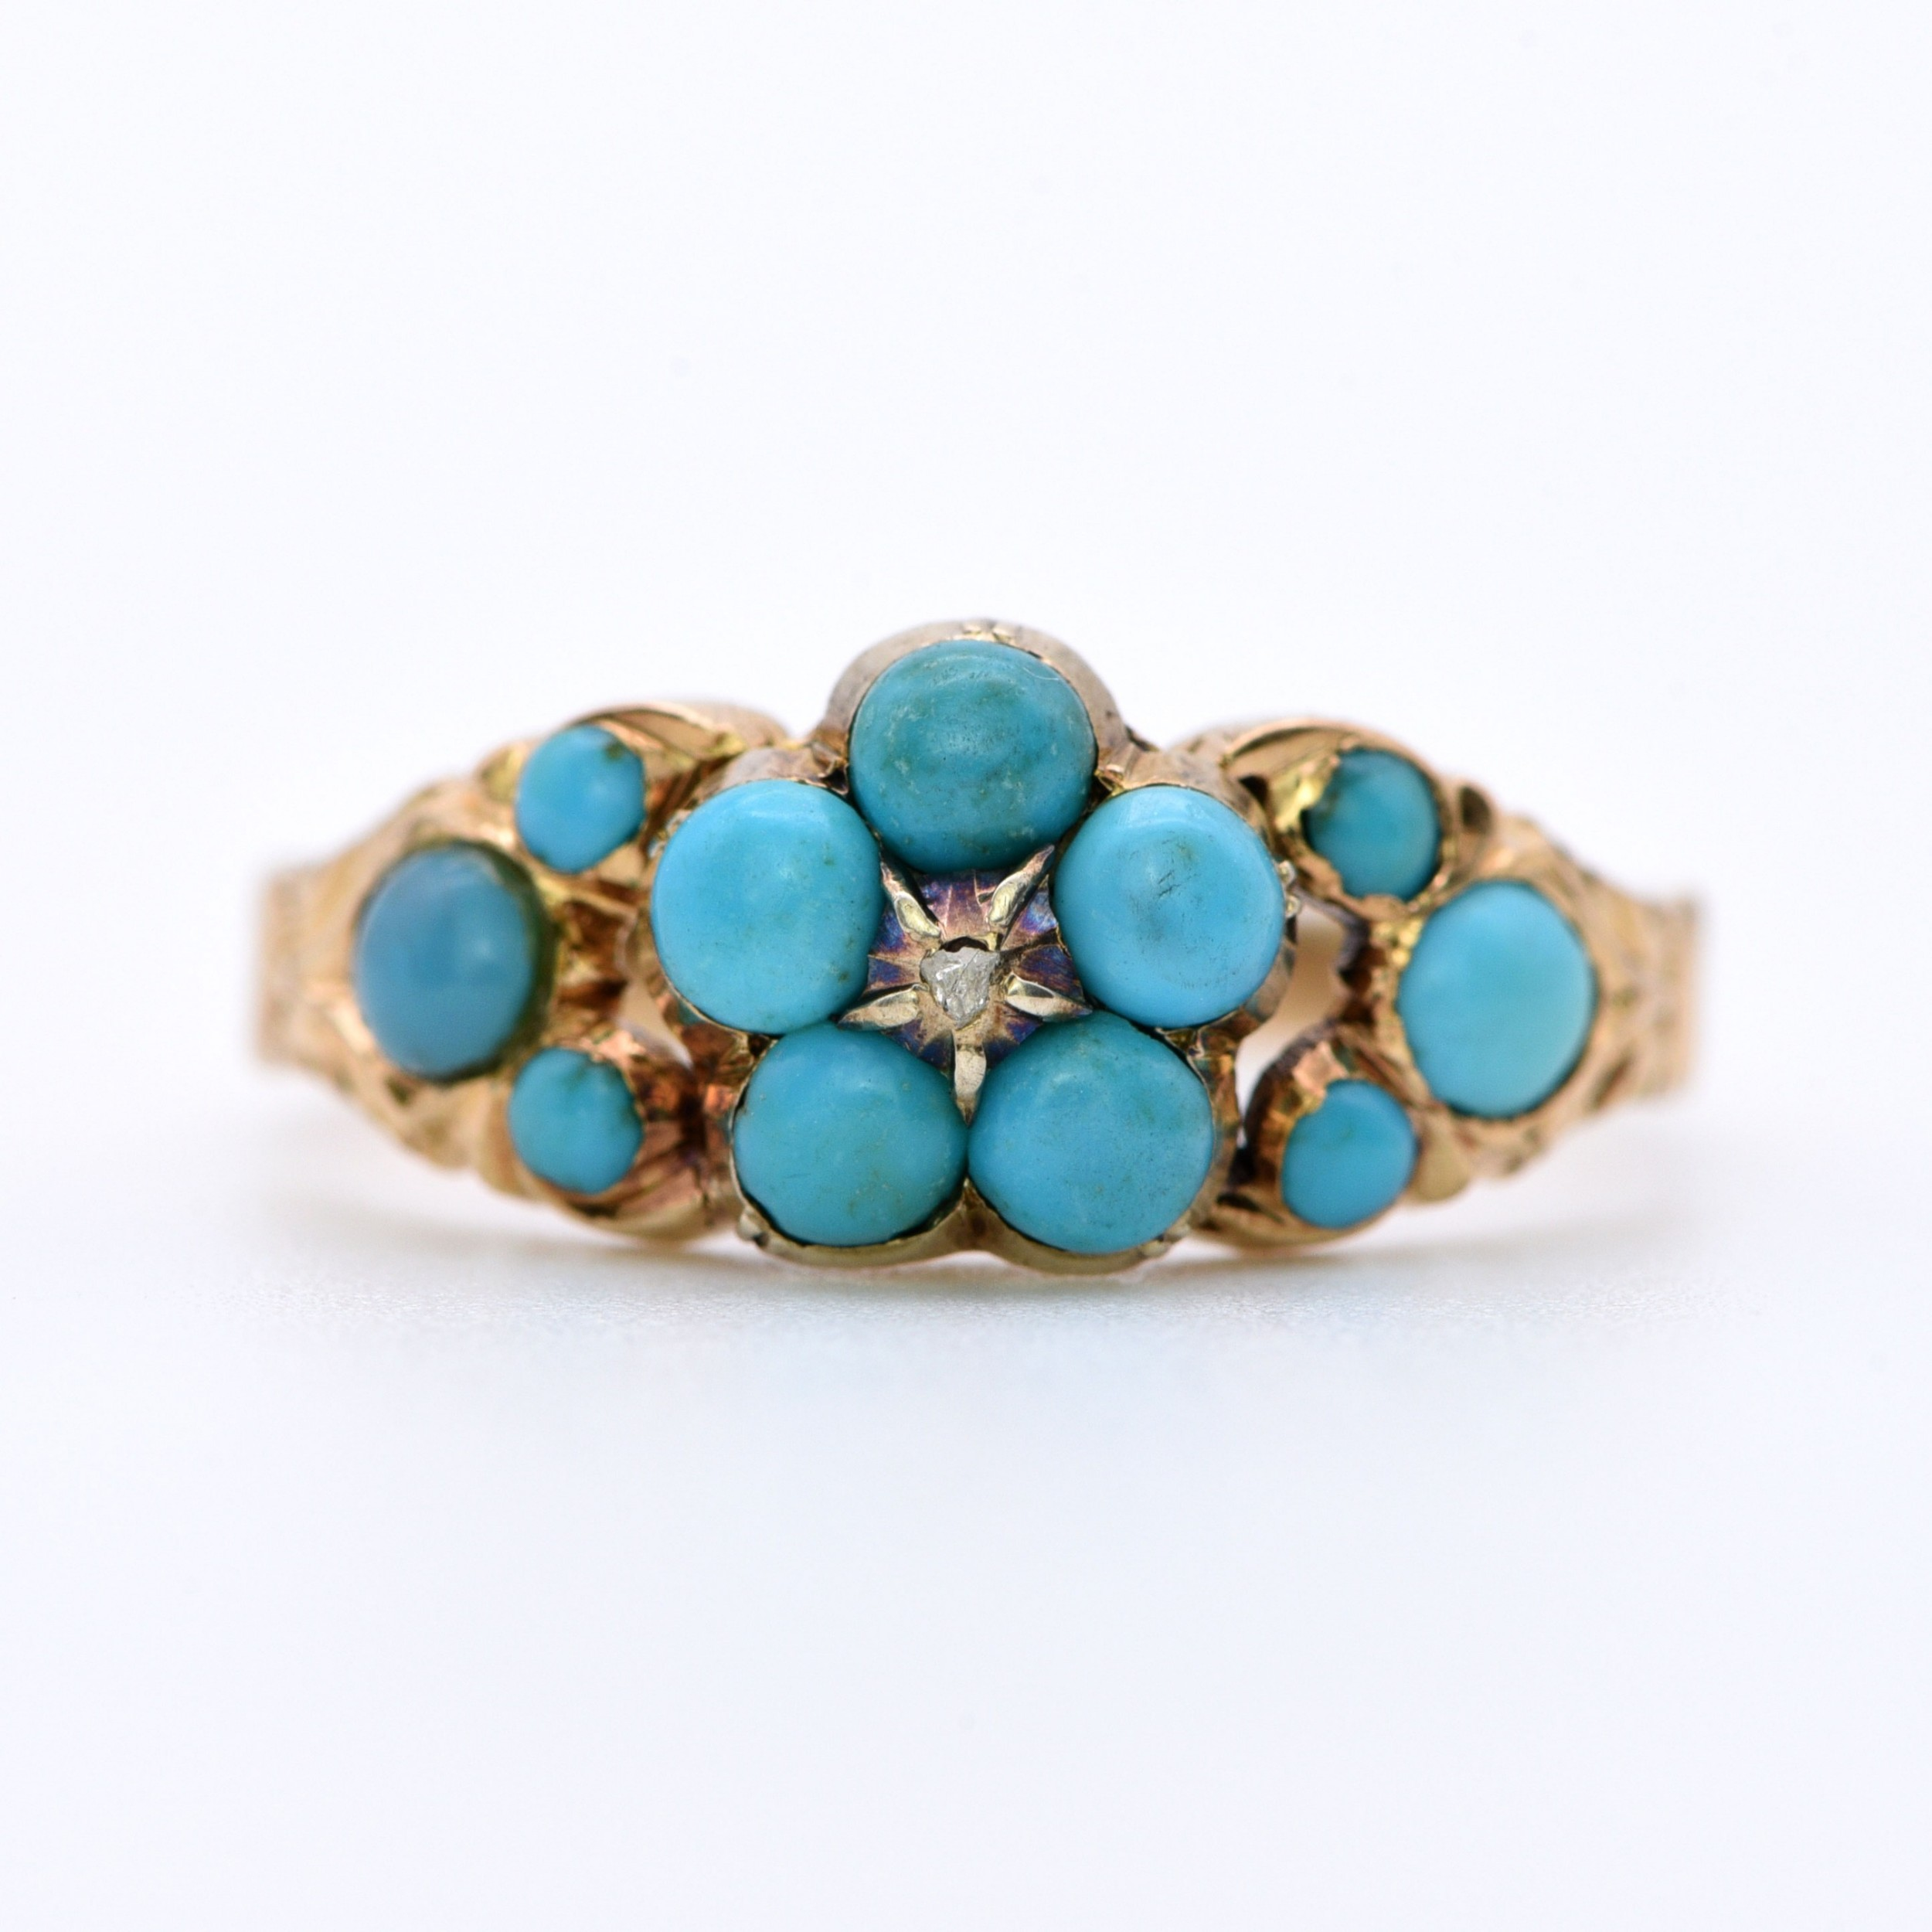 the antique victorian gold and turquoise forgetmenot ring